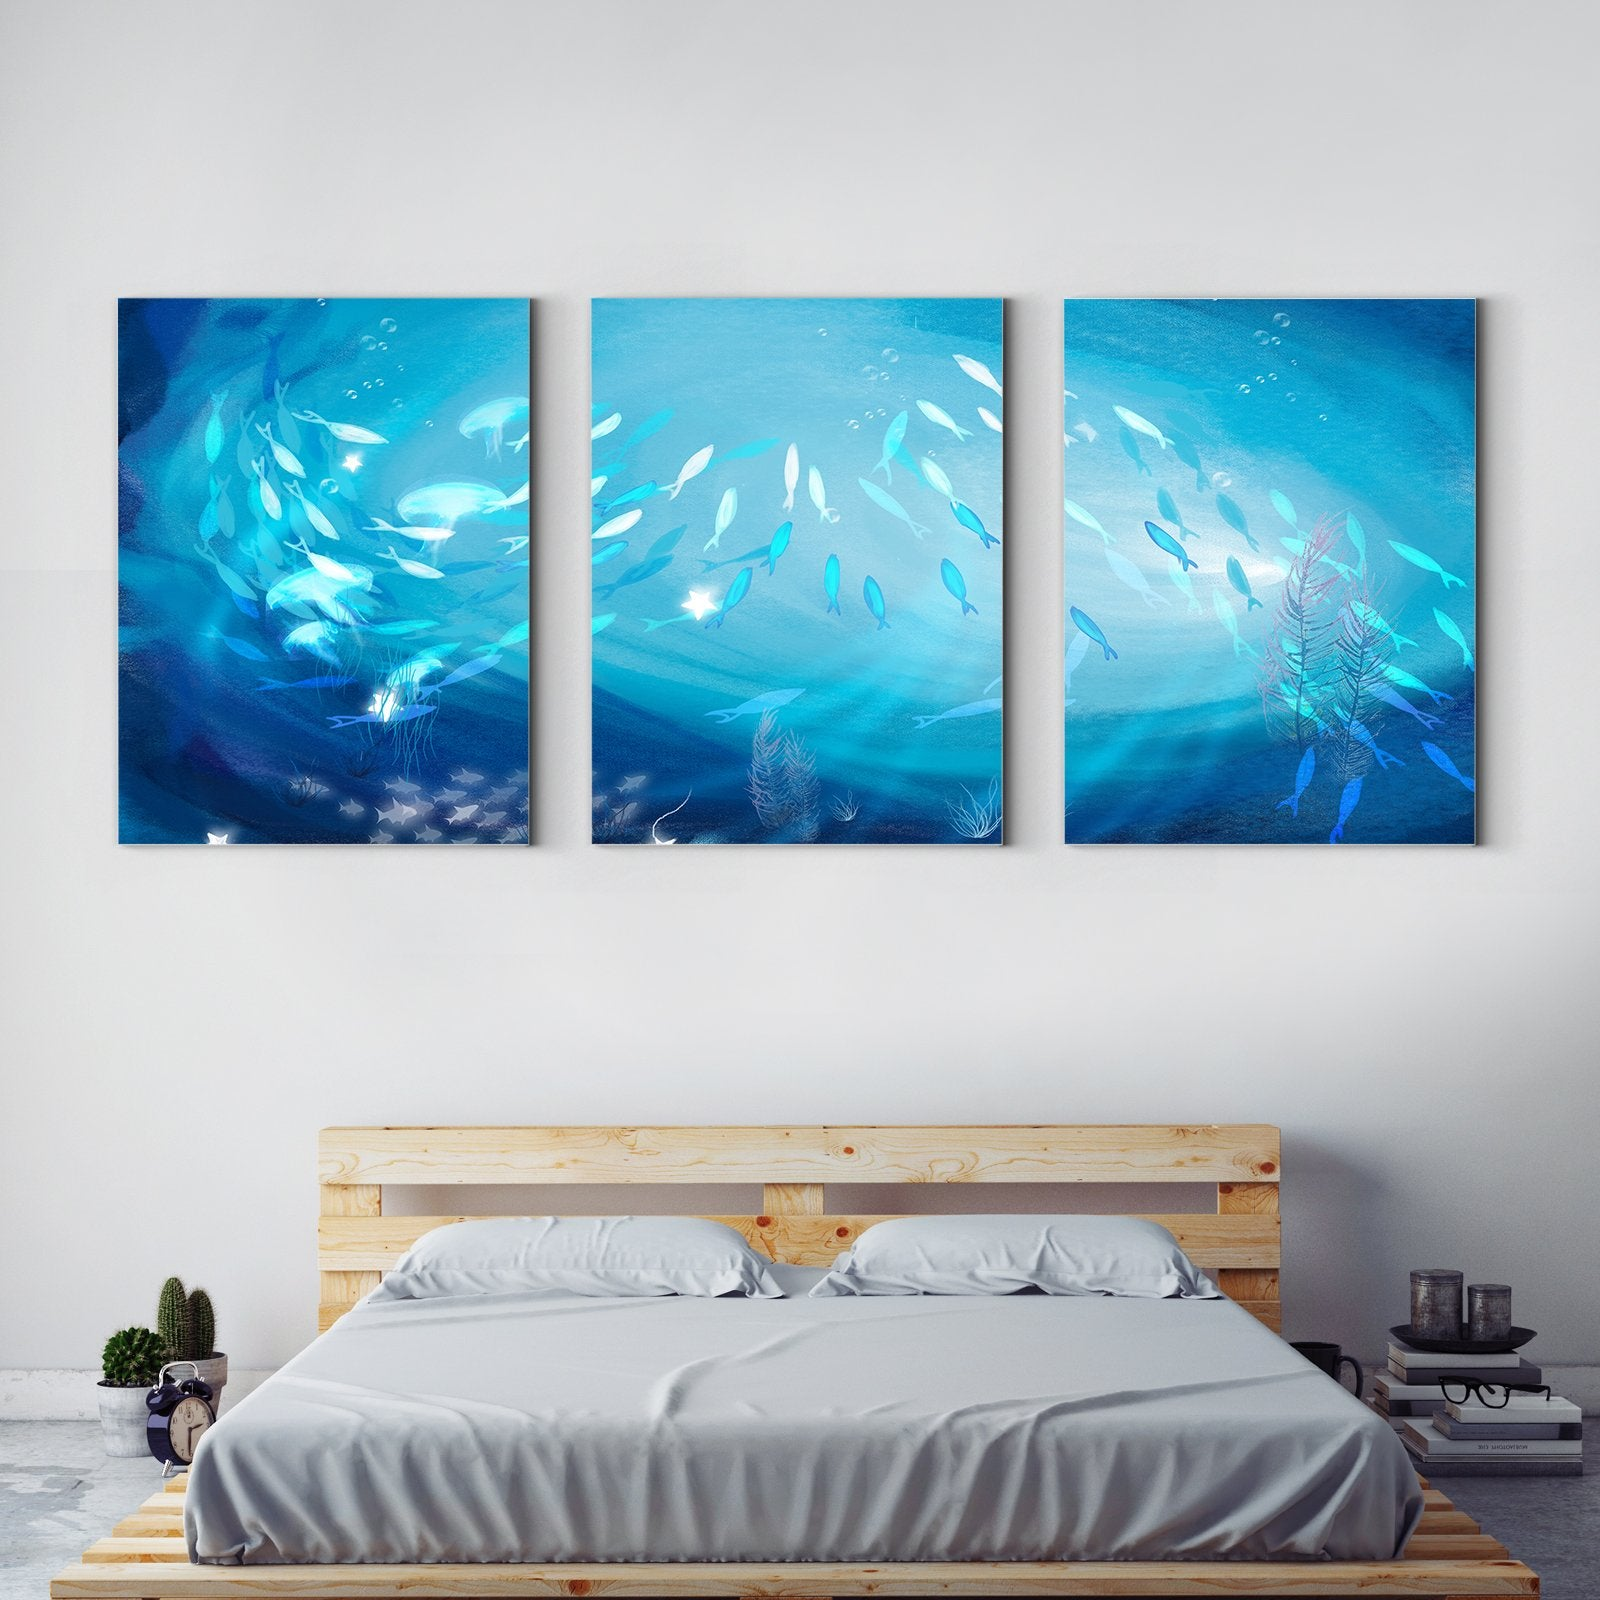 Fish-Animal Decorative Painting in the Deep Sea - Living Room-Multi Panel Wall Art032